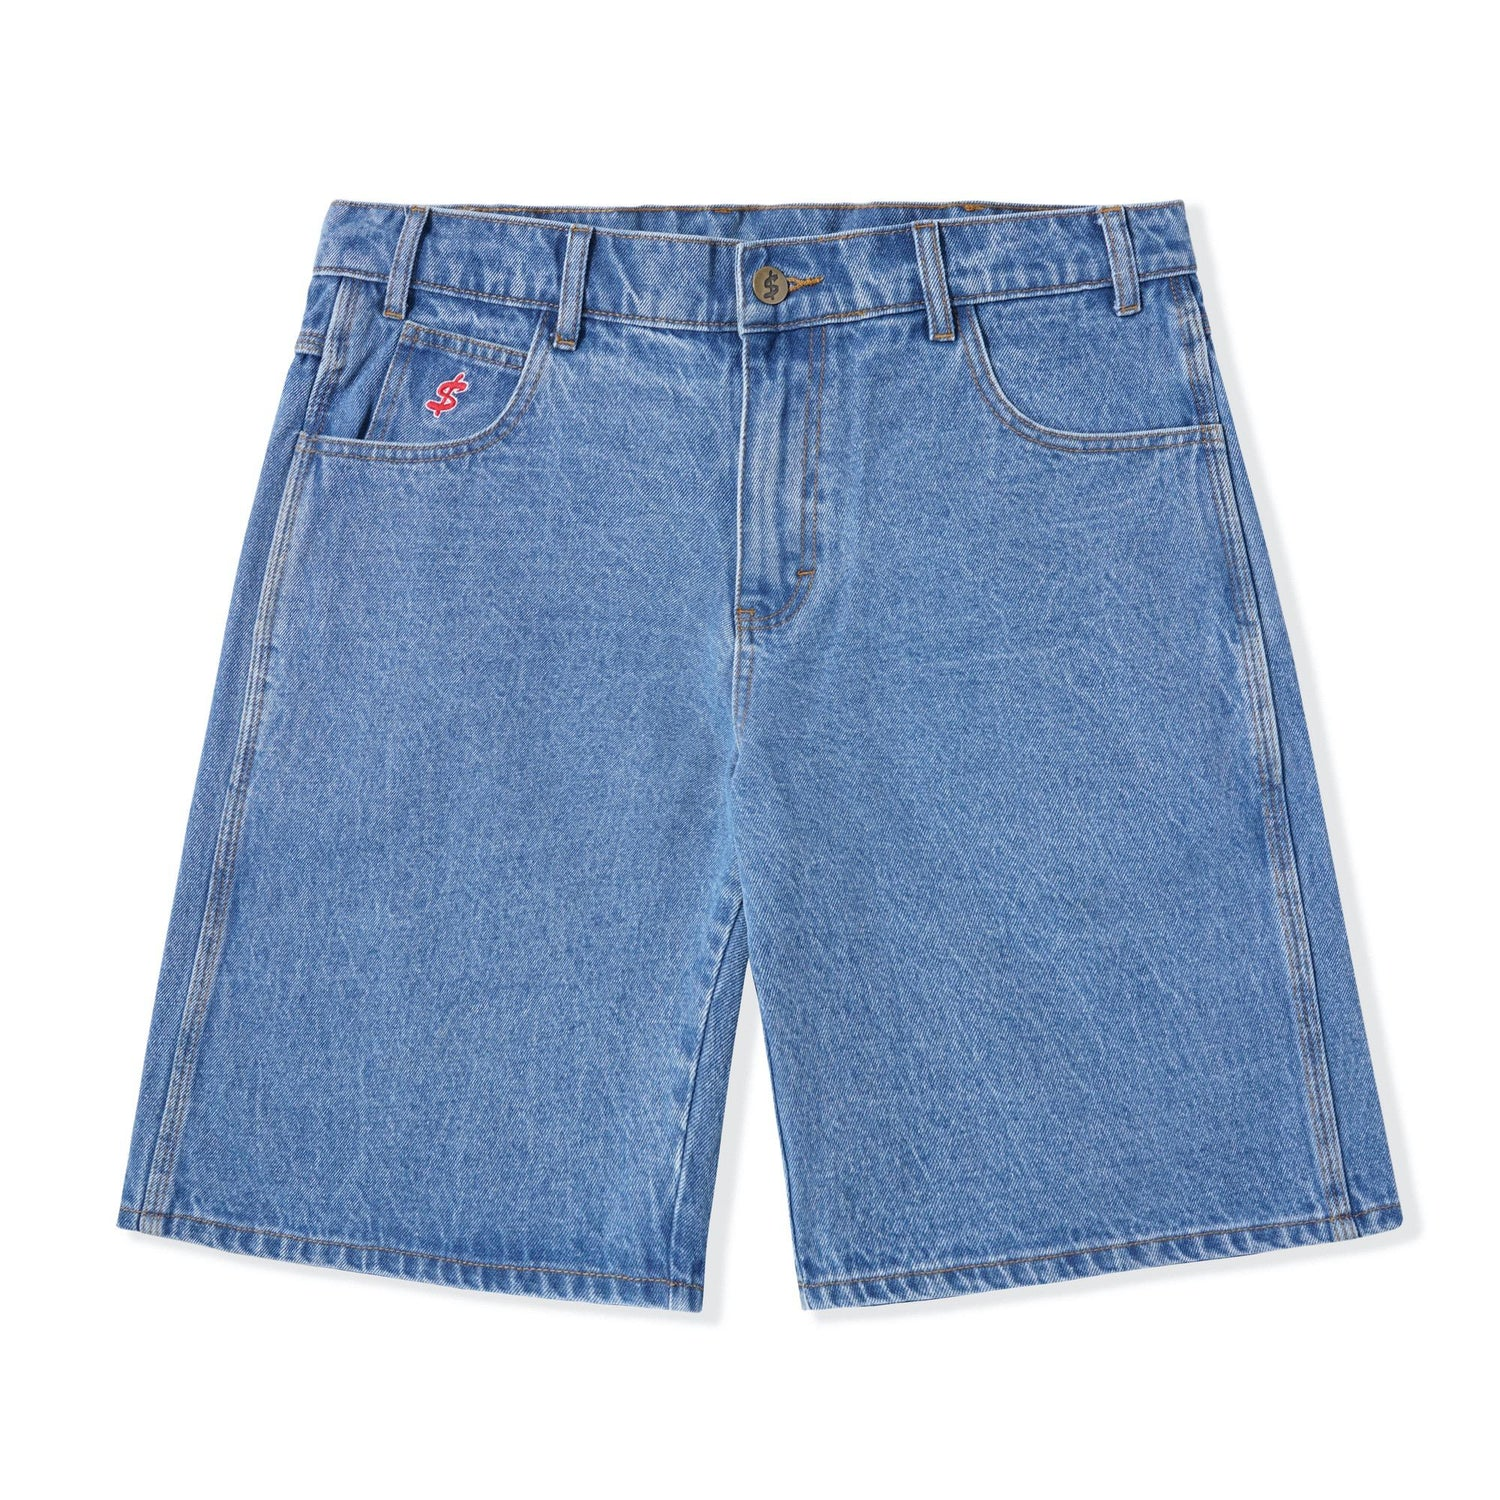 Baggy Jean Shorts, Washed Indigo